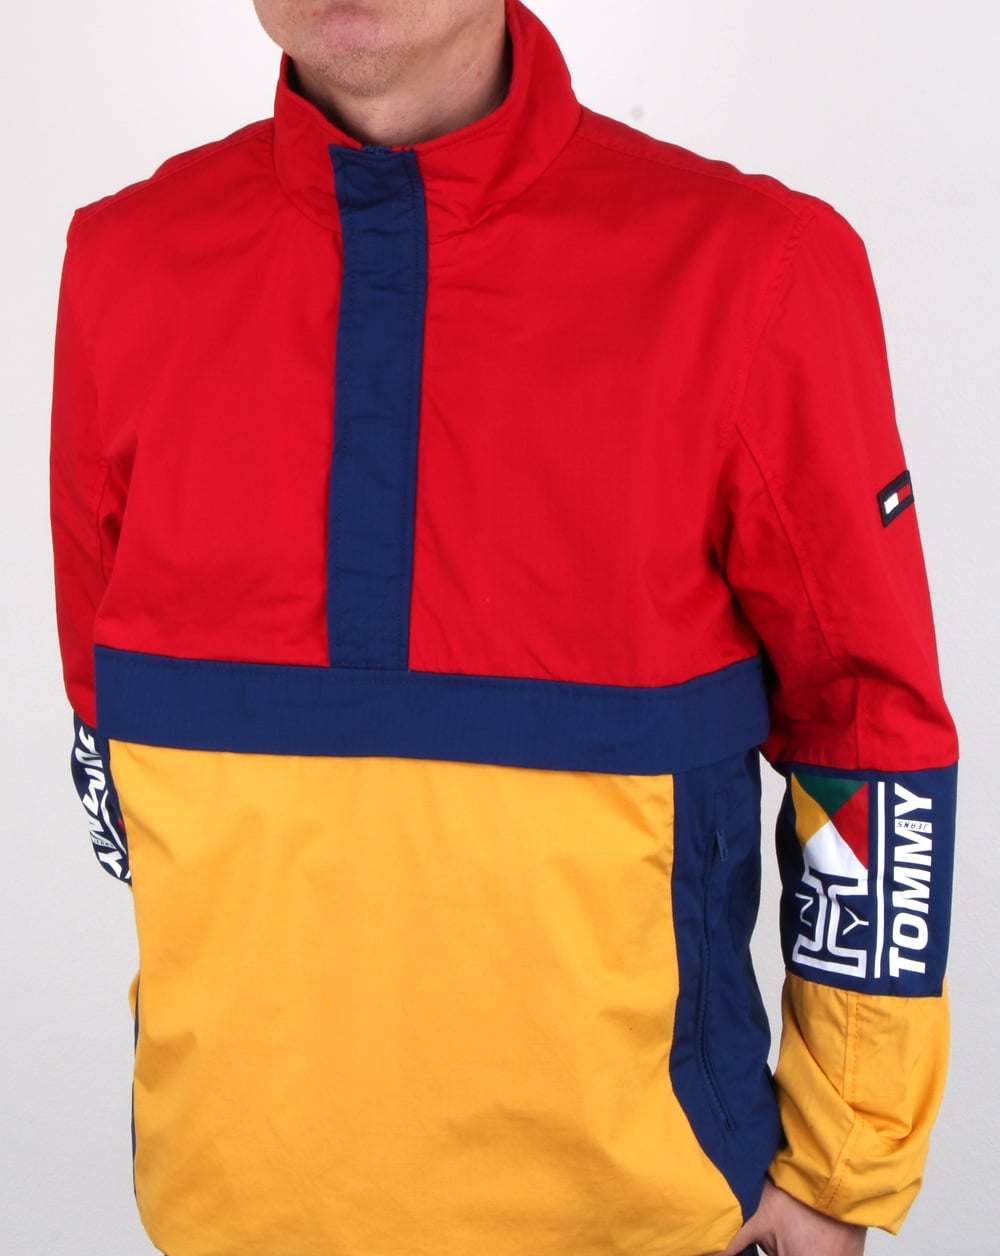 tommy hilfiger retro block pullover jacket red yellow navy mens rain. Black Bedroom Furniture Sets. Home Design Ideas